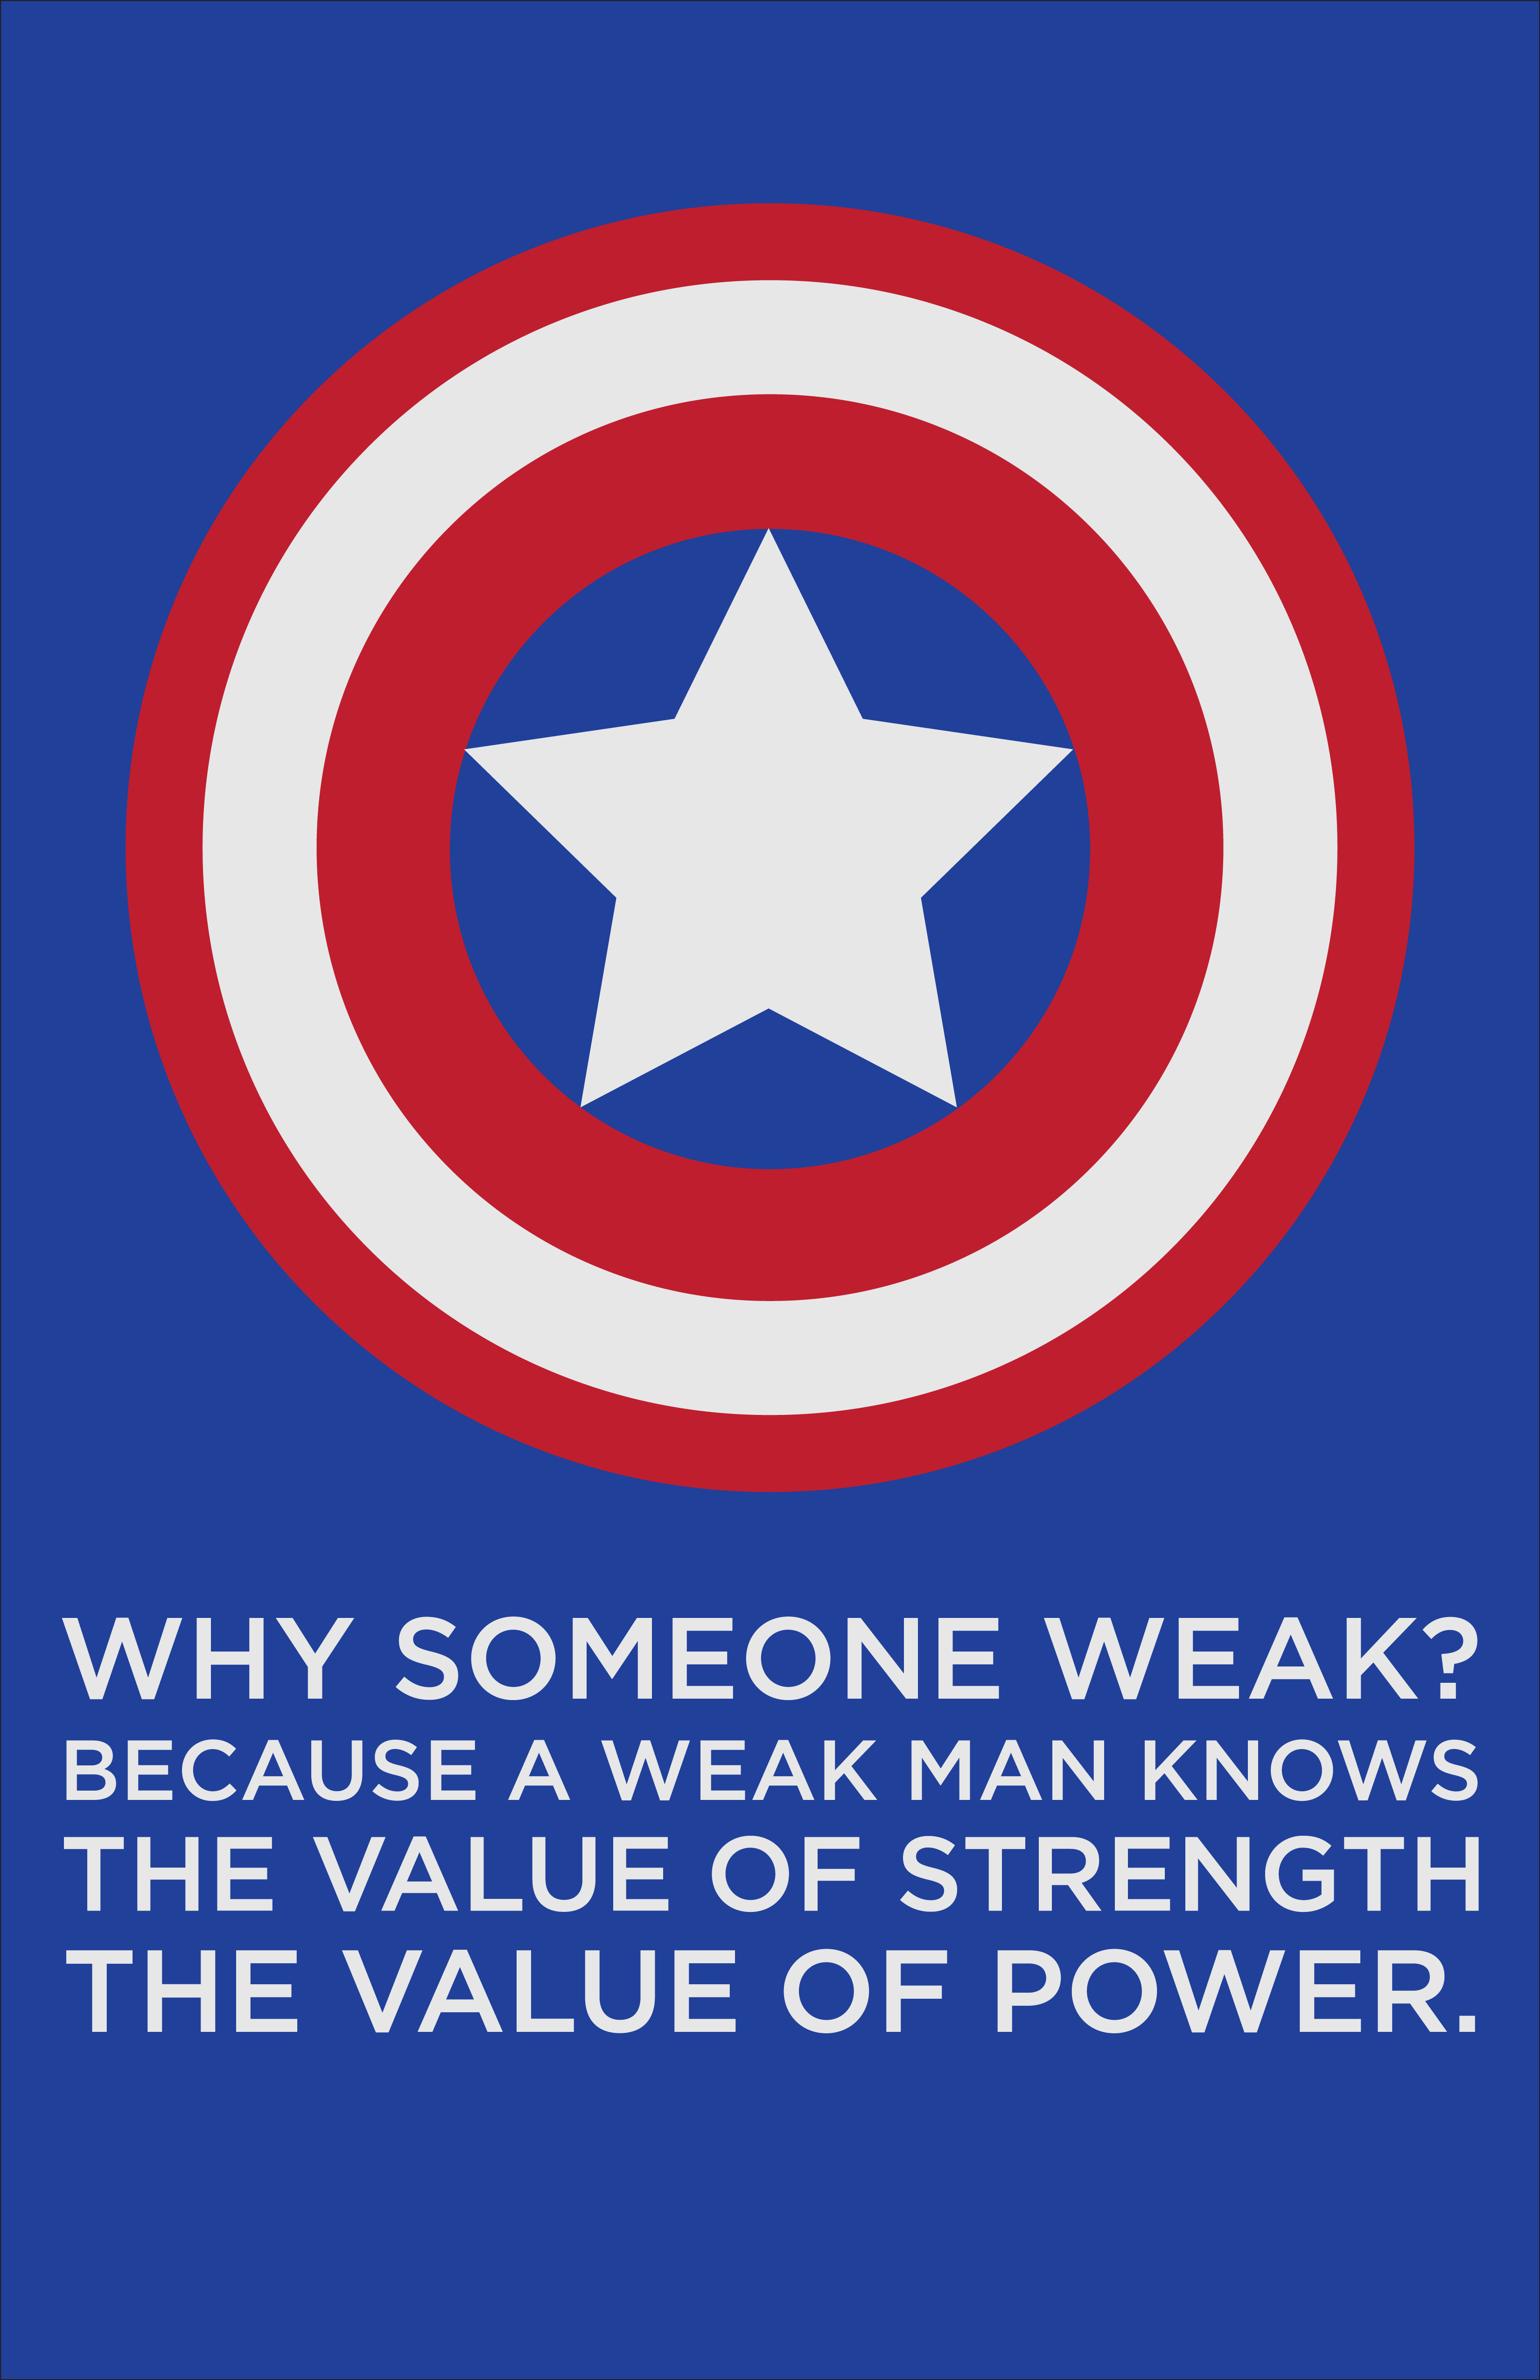 Pin by Cynthia Means on captain america. Superhero